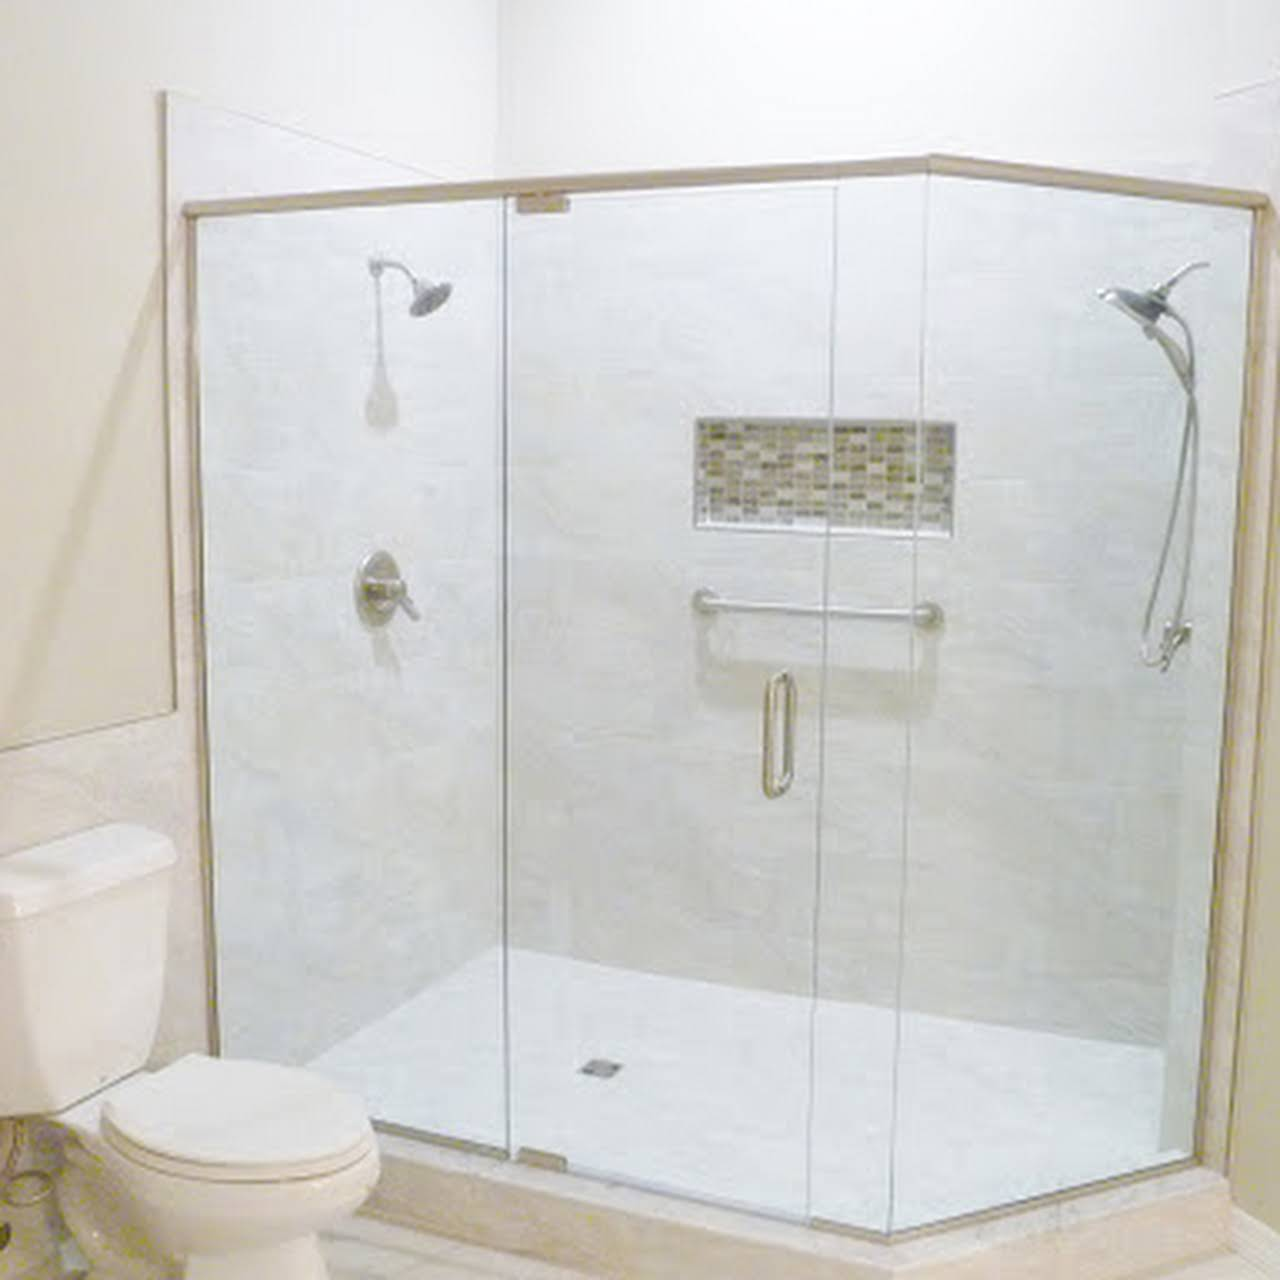 Marvin S Custom Shower Enclosures And Window Screens Llc